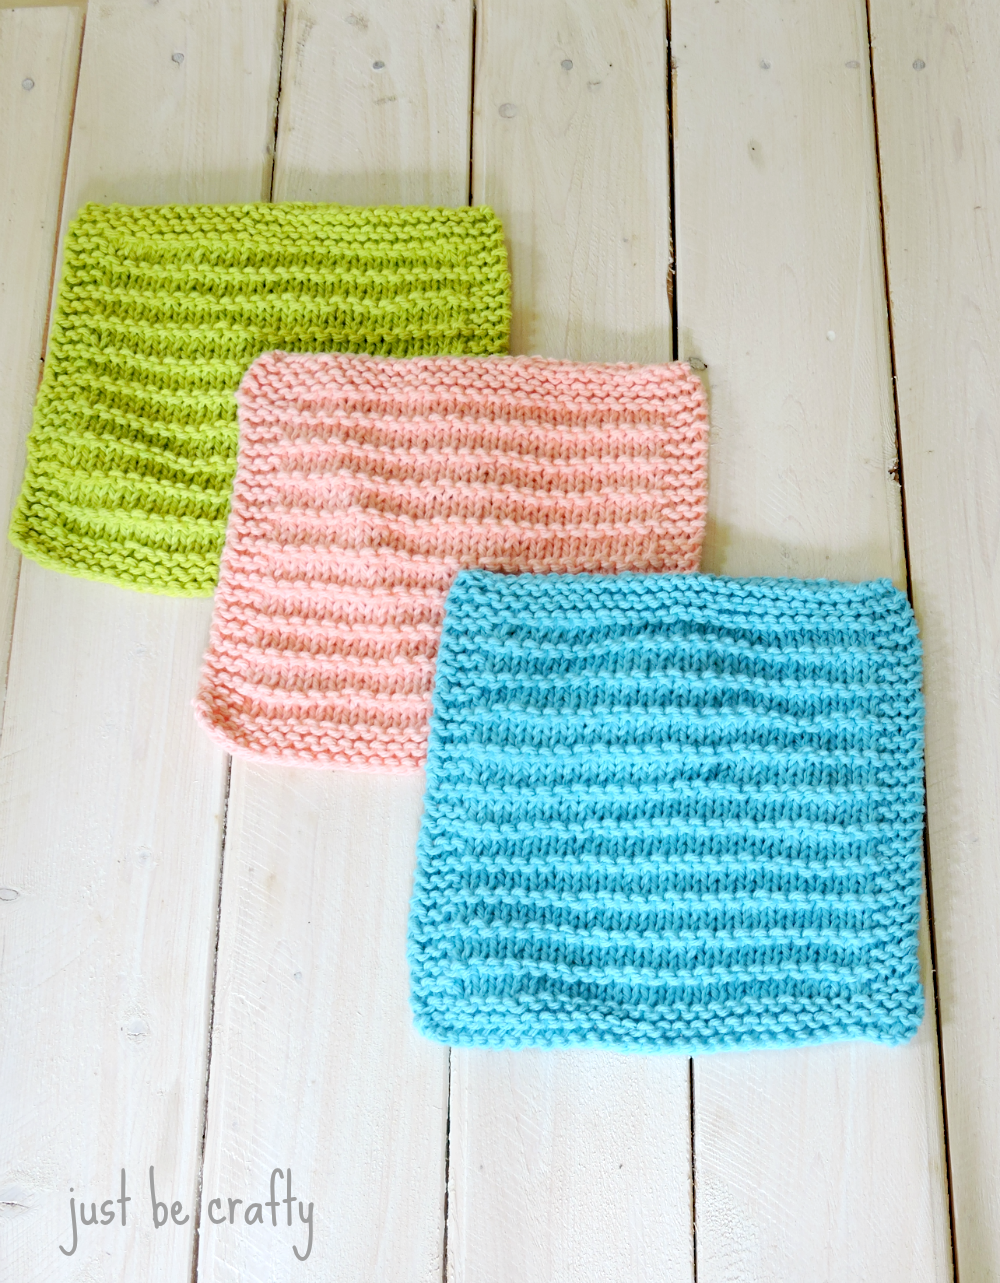 Farmhouse Kitchen Knitted Dishcloths | Knitted dishcloths, Patterns ...